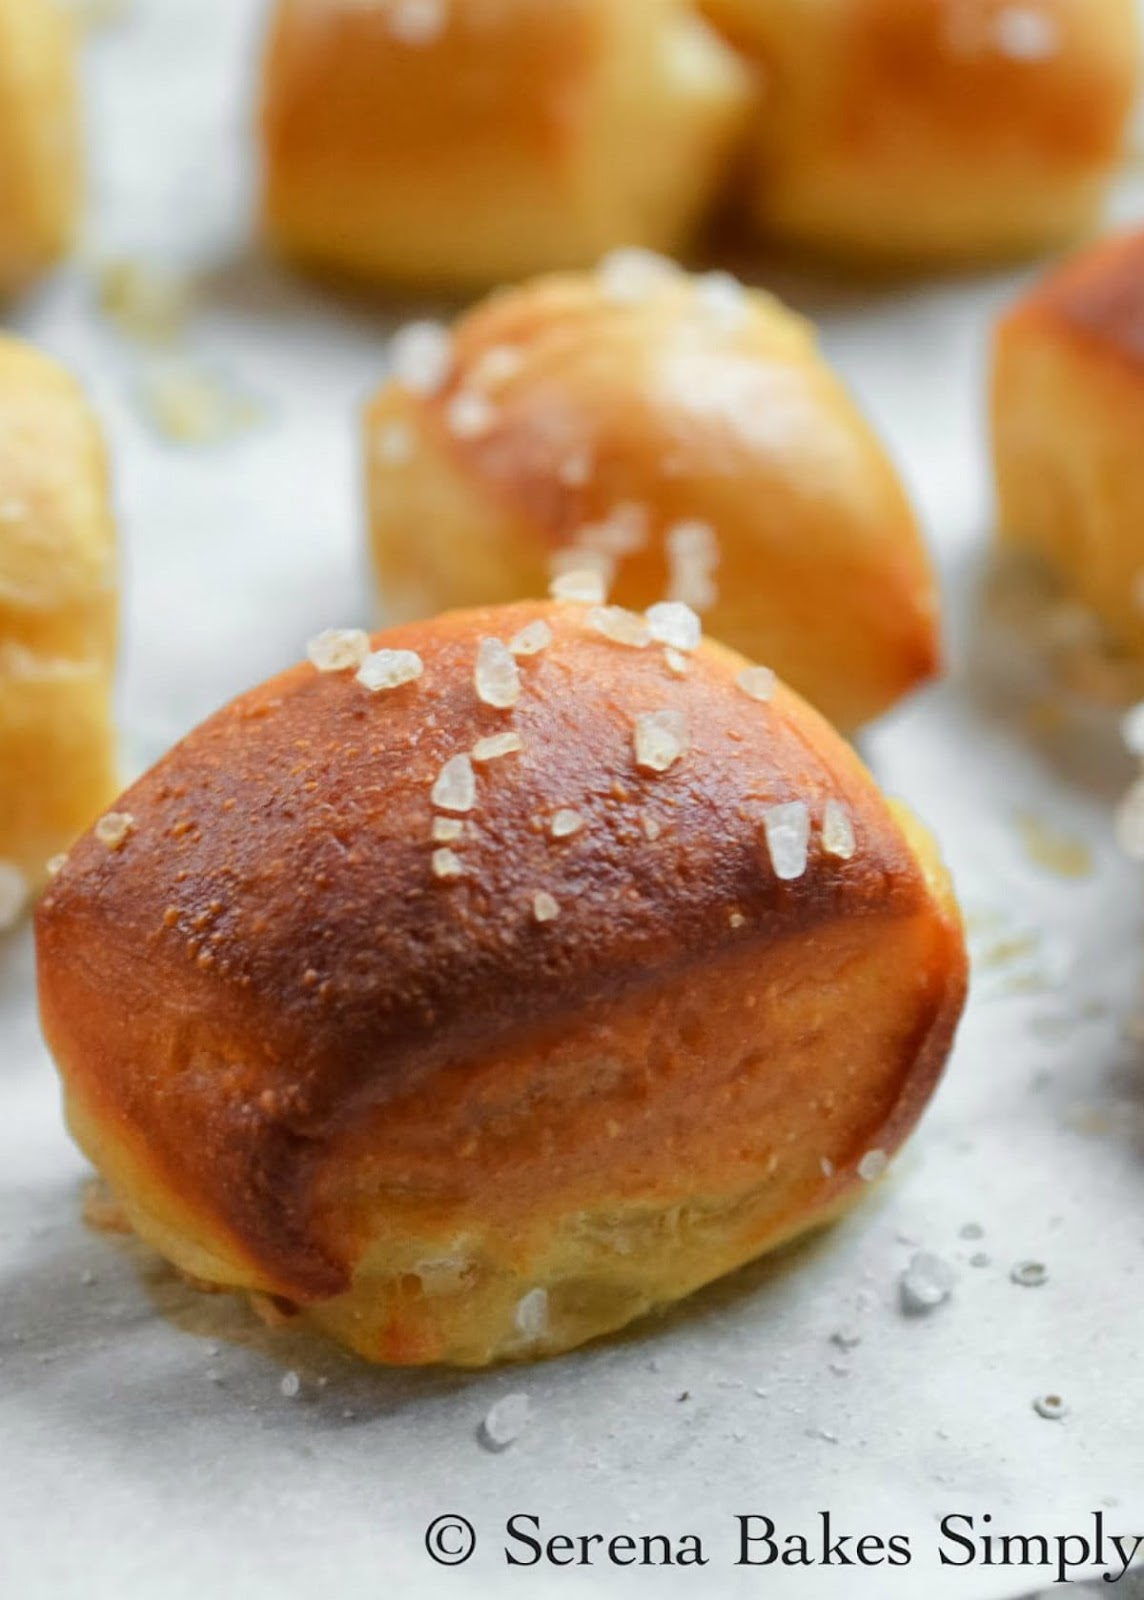 Pretzel Bites recipe baked in the oven are a family favorite for dipping in nacho cheese sauce.